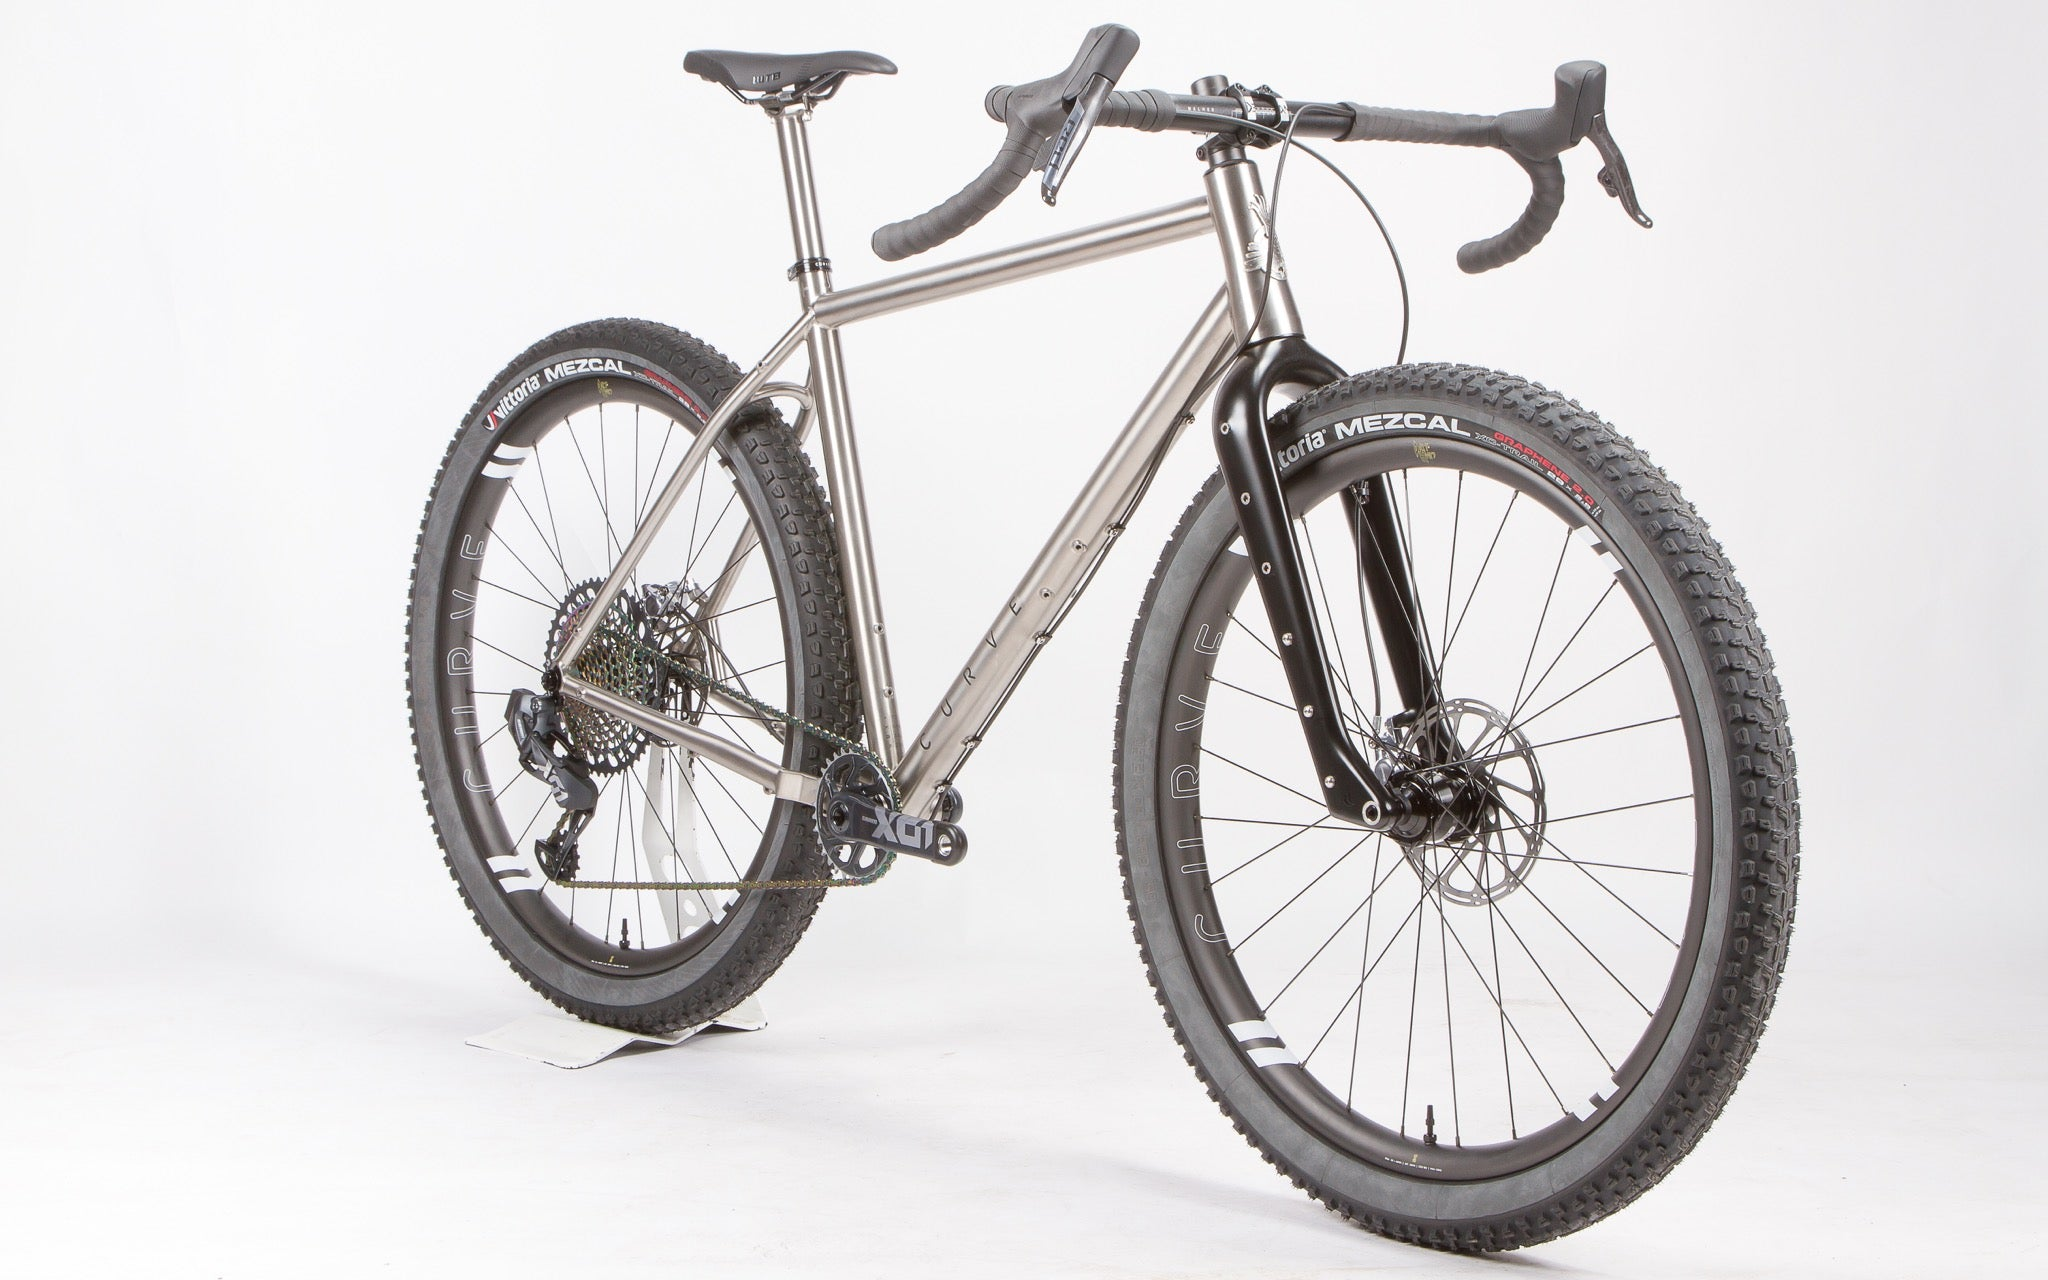 Curve GMX+ titanium bikepacking bike